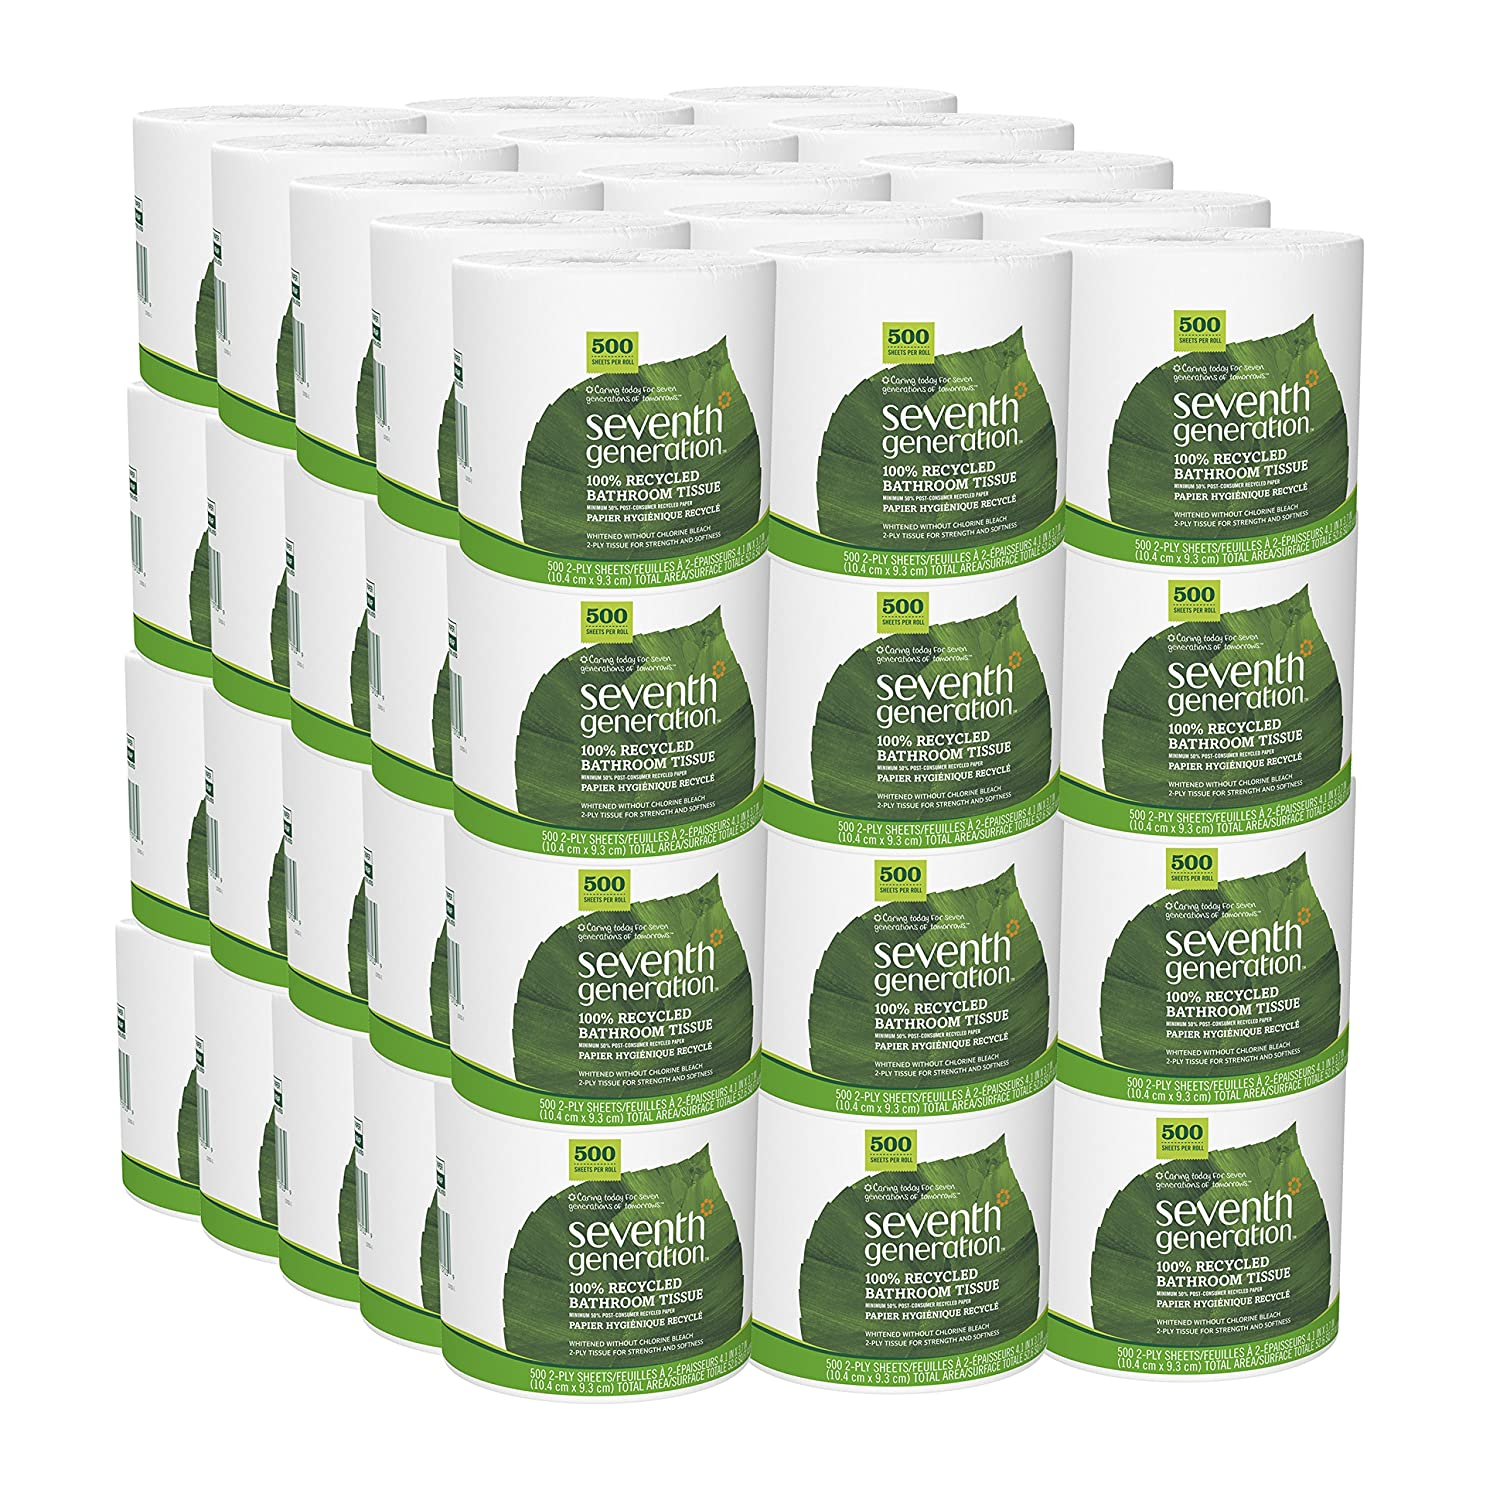 amazoncom seventh generation bathroom tissue 2 ply sheets 500 count pack of 60 health personal care - Bathroom Tissue